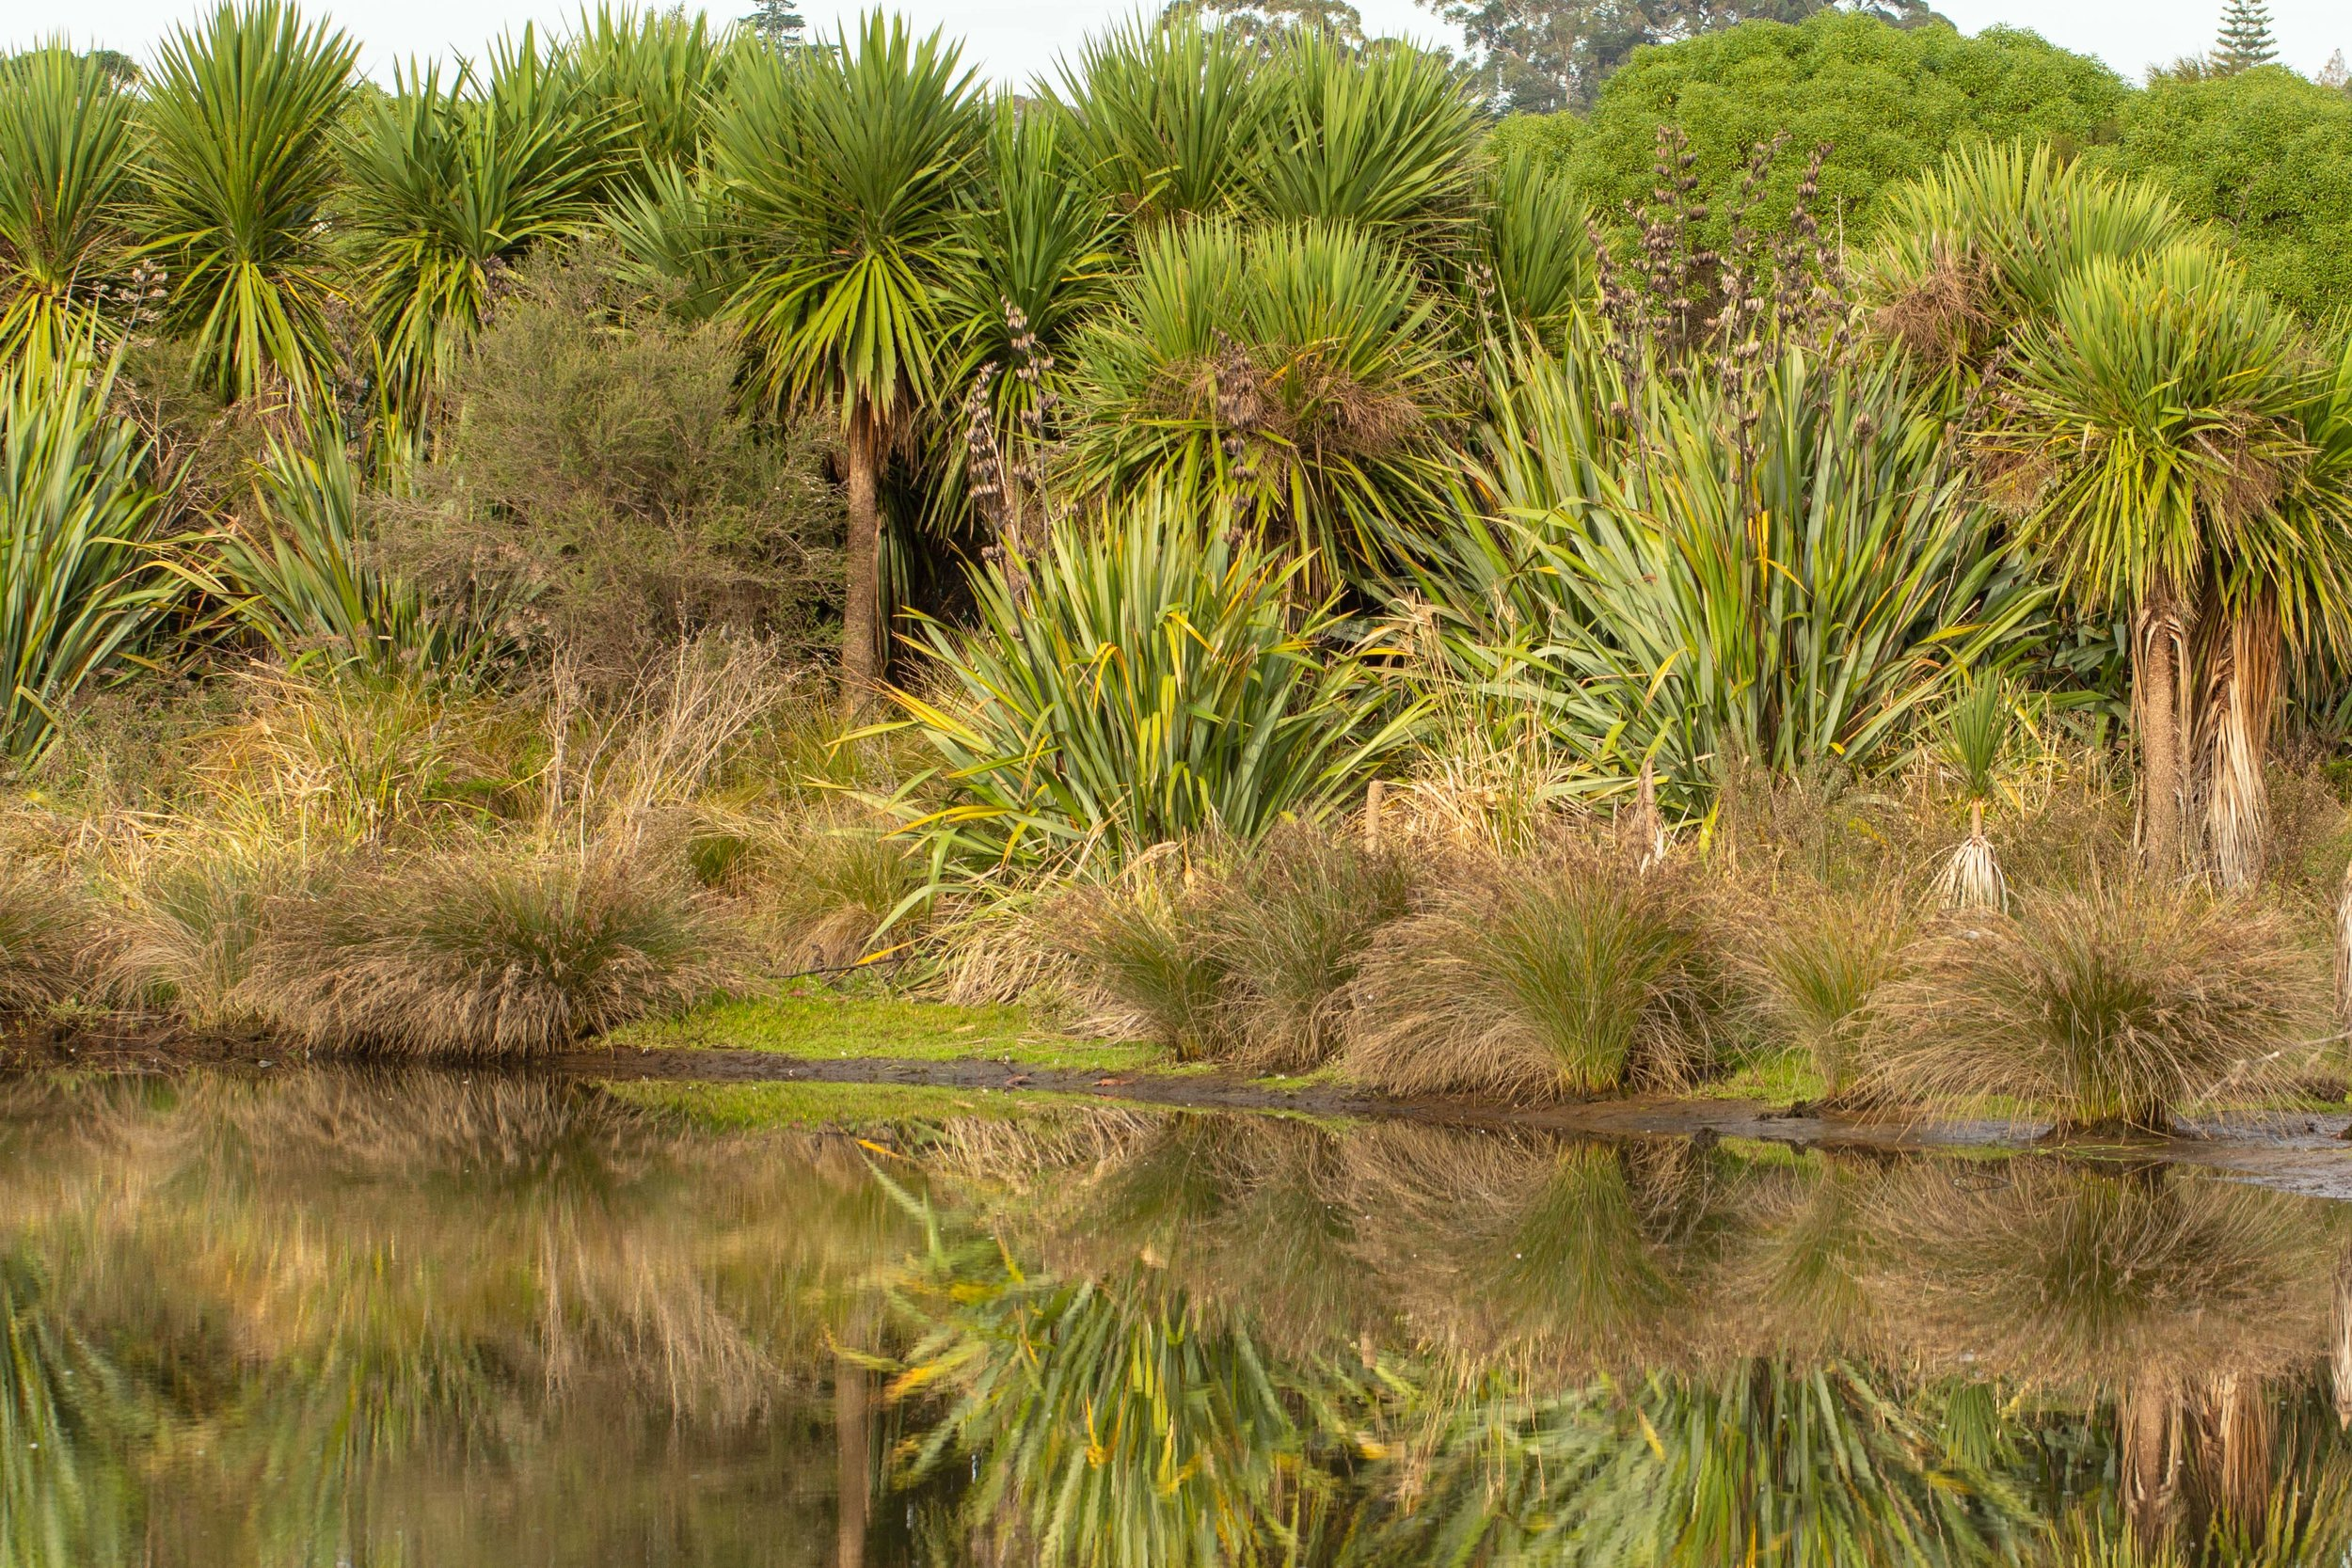 The Pukehina project involves a major scale land use change. Photo credit - Leigh Nicholas.